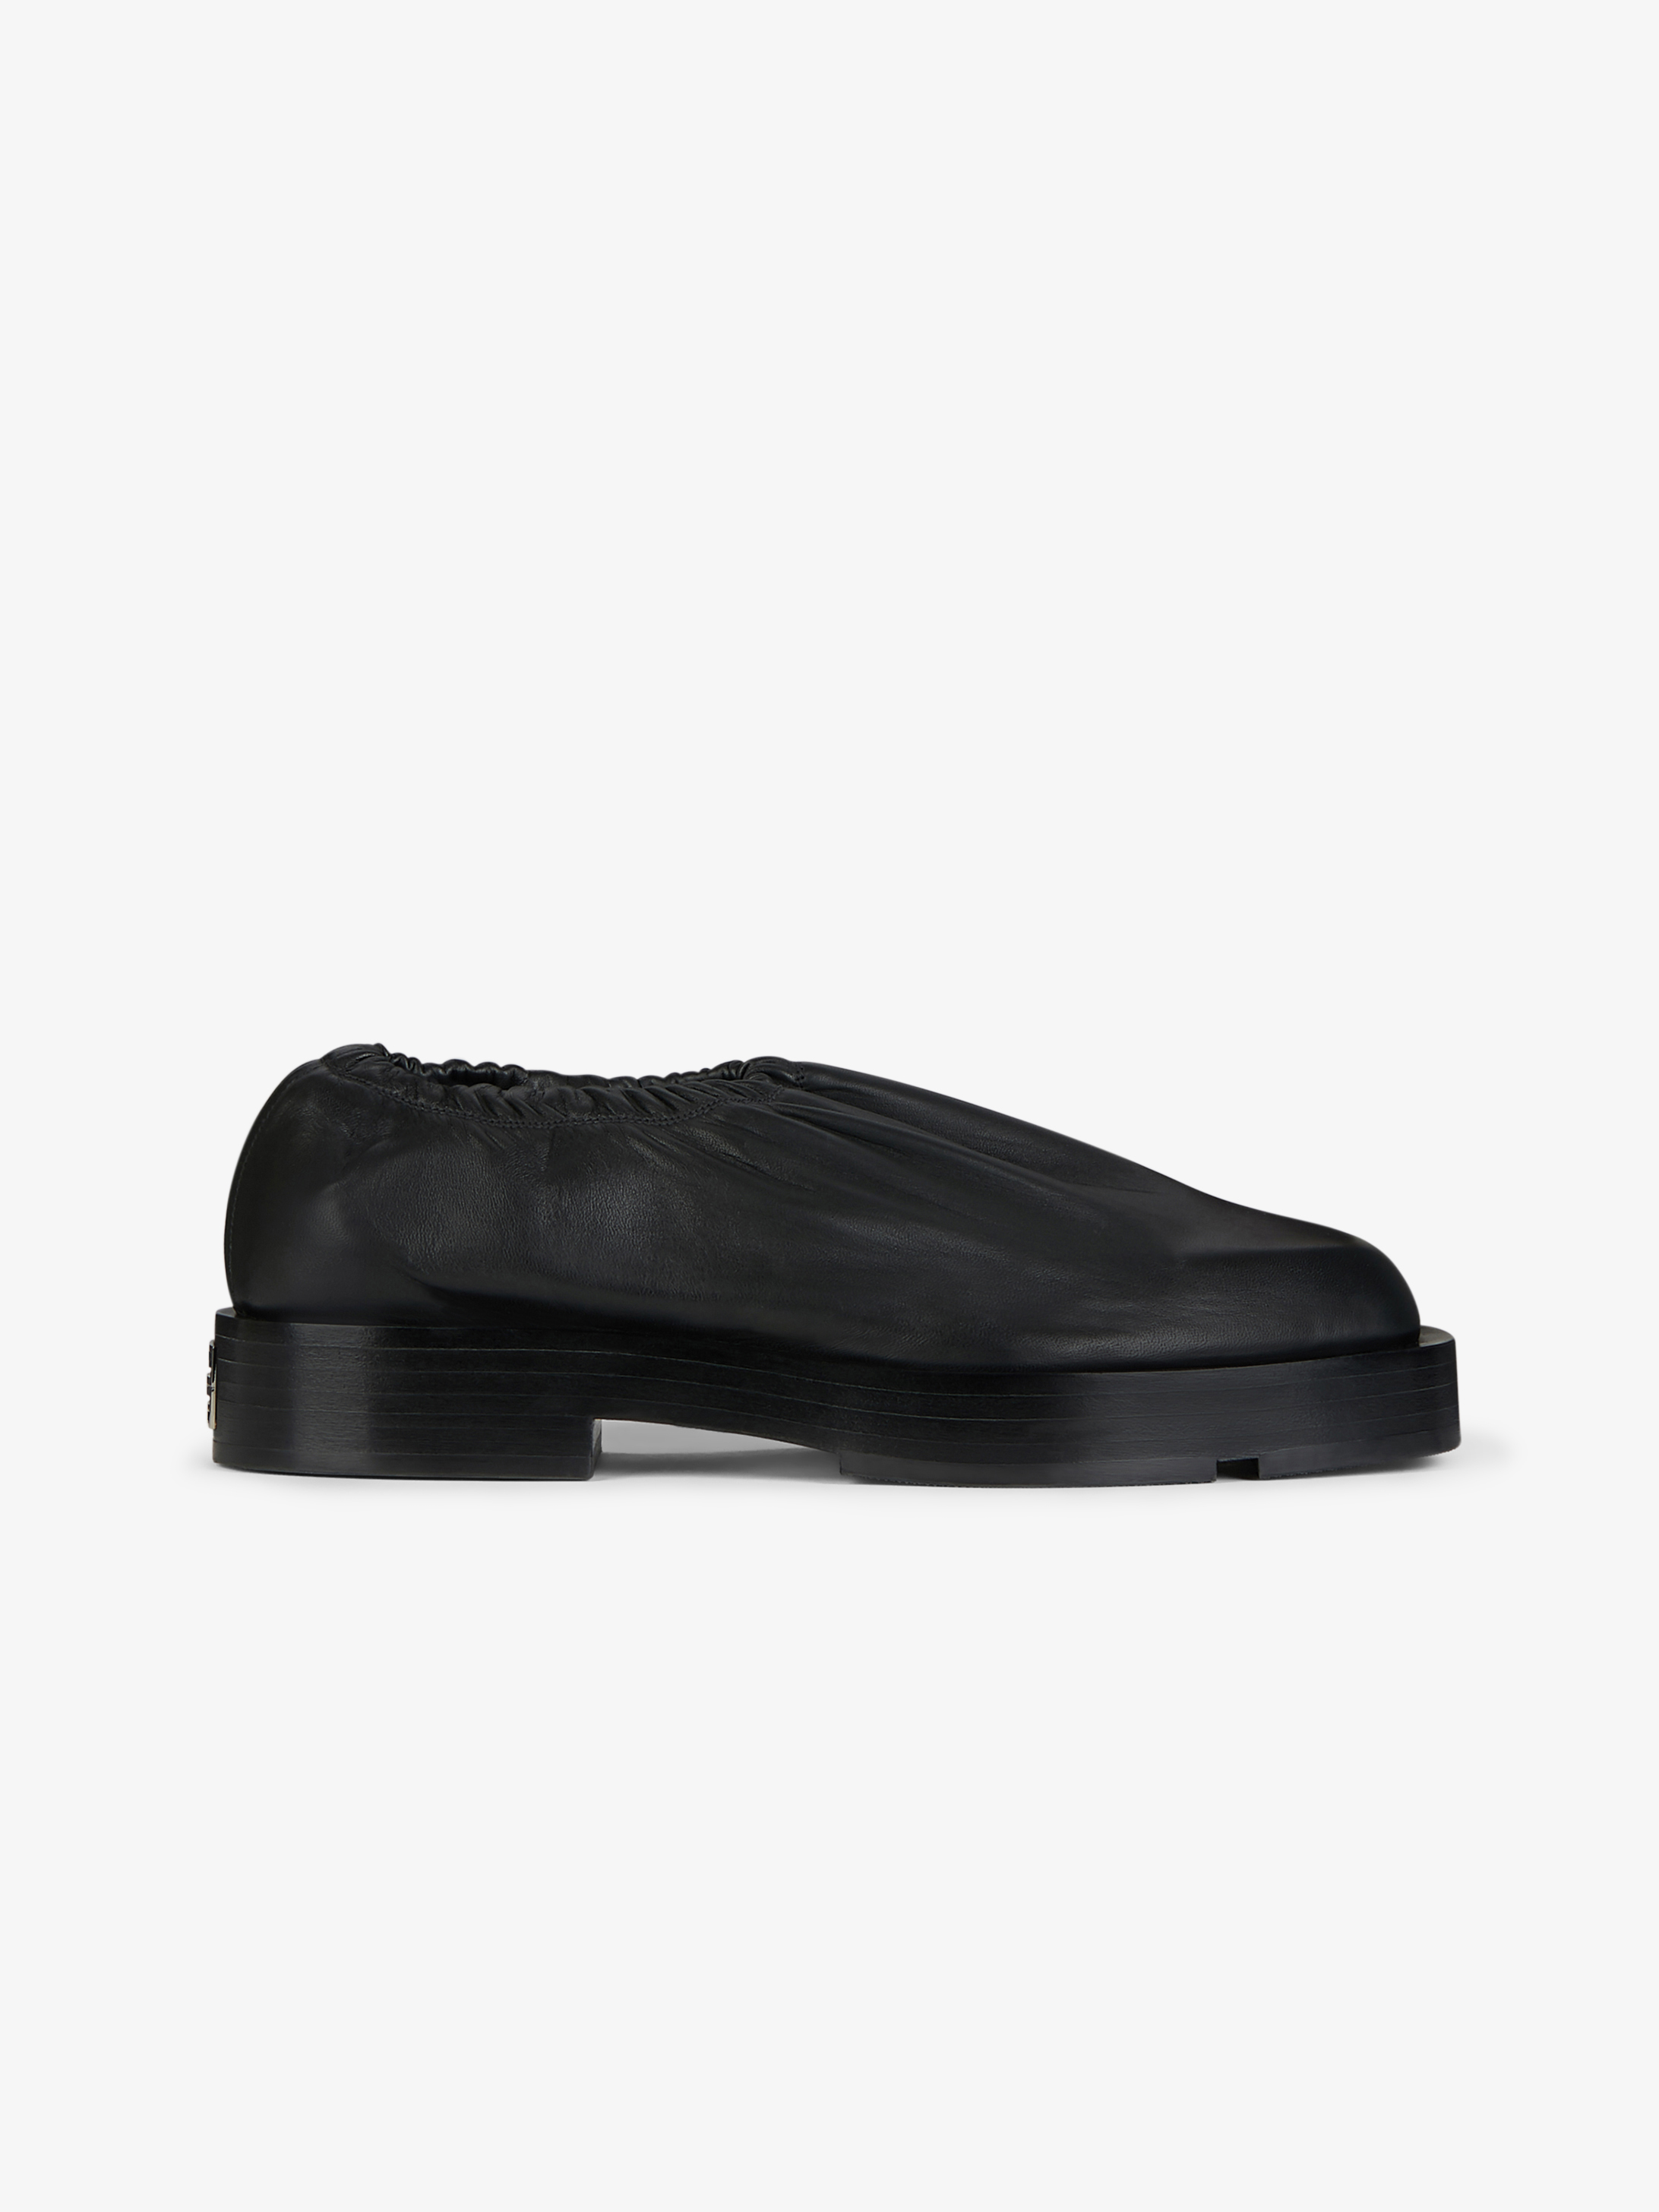 Slip-on in smooth leather